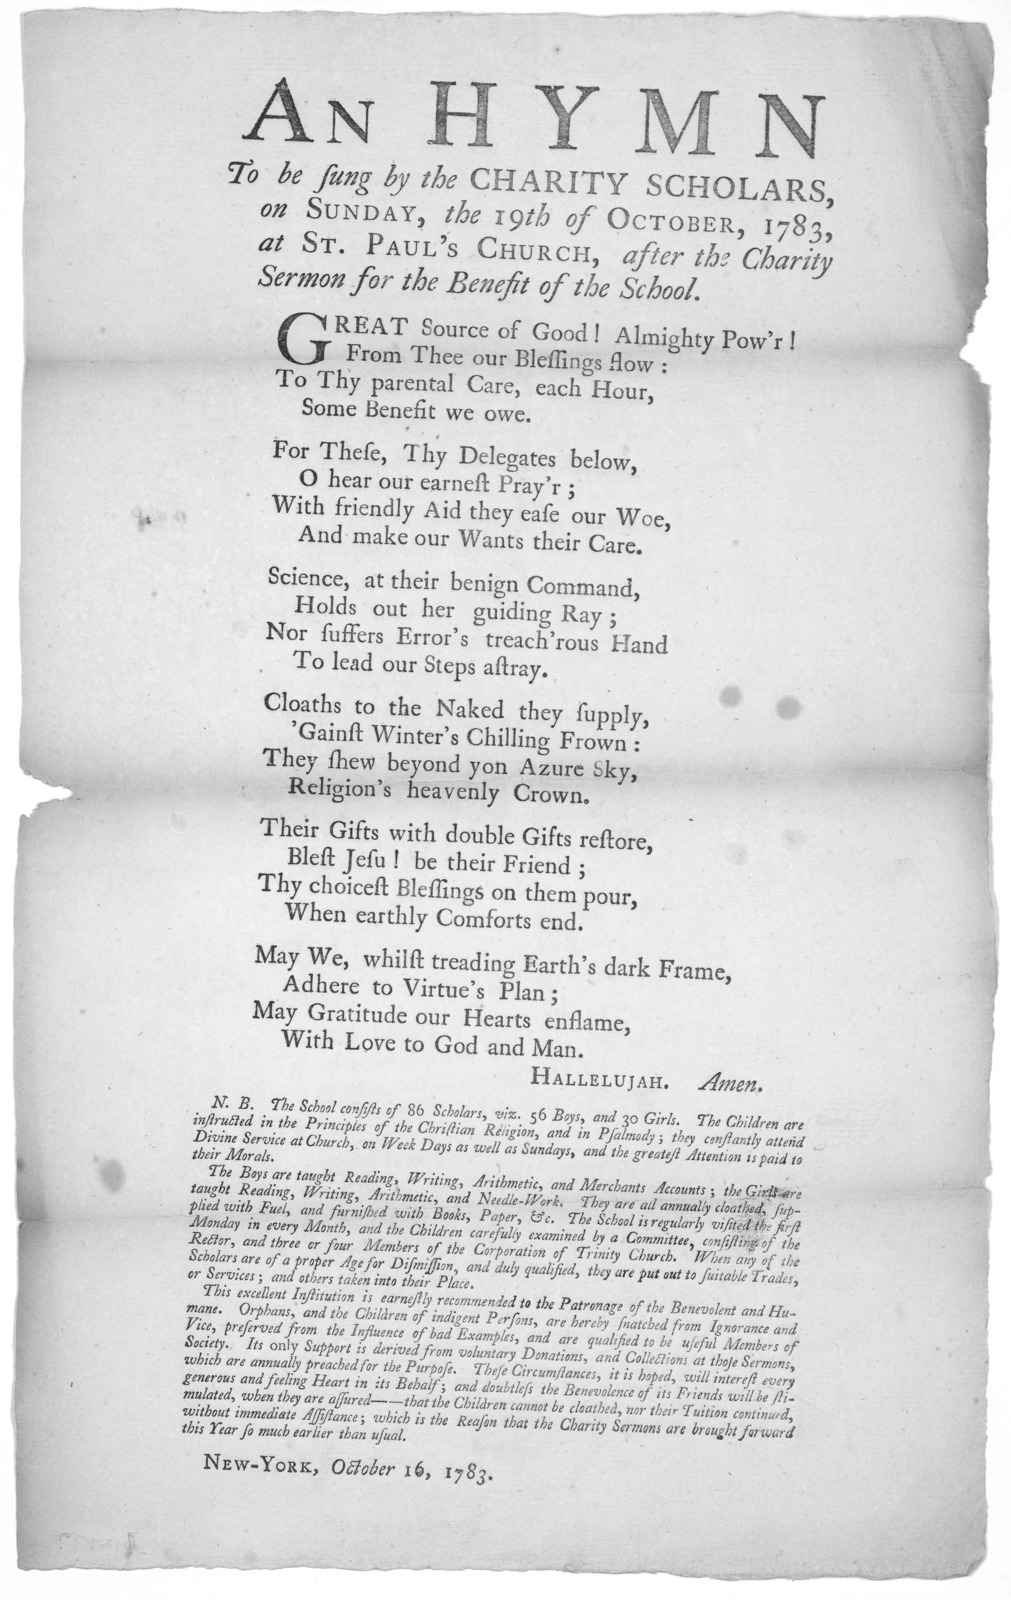 An hymn to be sung by the Charity scholars, on Sunday, the 19th of October, 1783, at St. Paul's church, after the Charity sermon for the benefit of the school ... New-York, October 16, 1783.